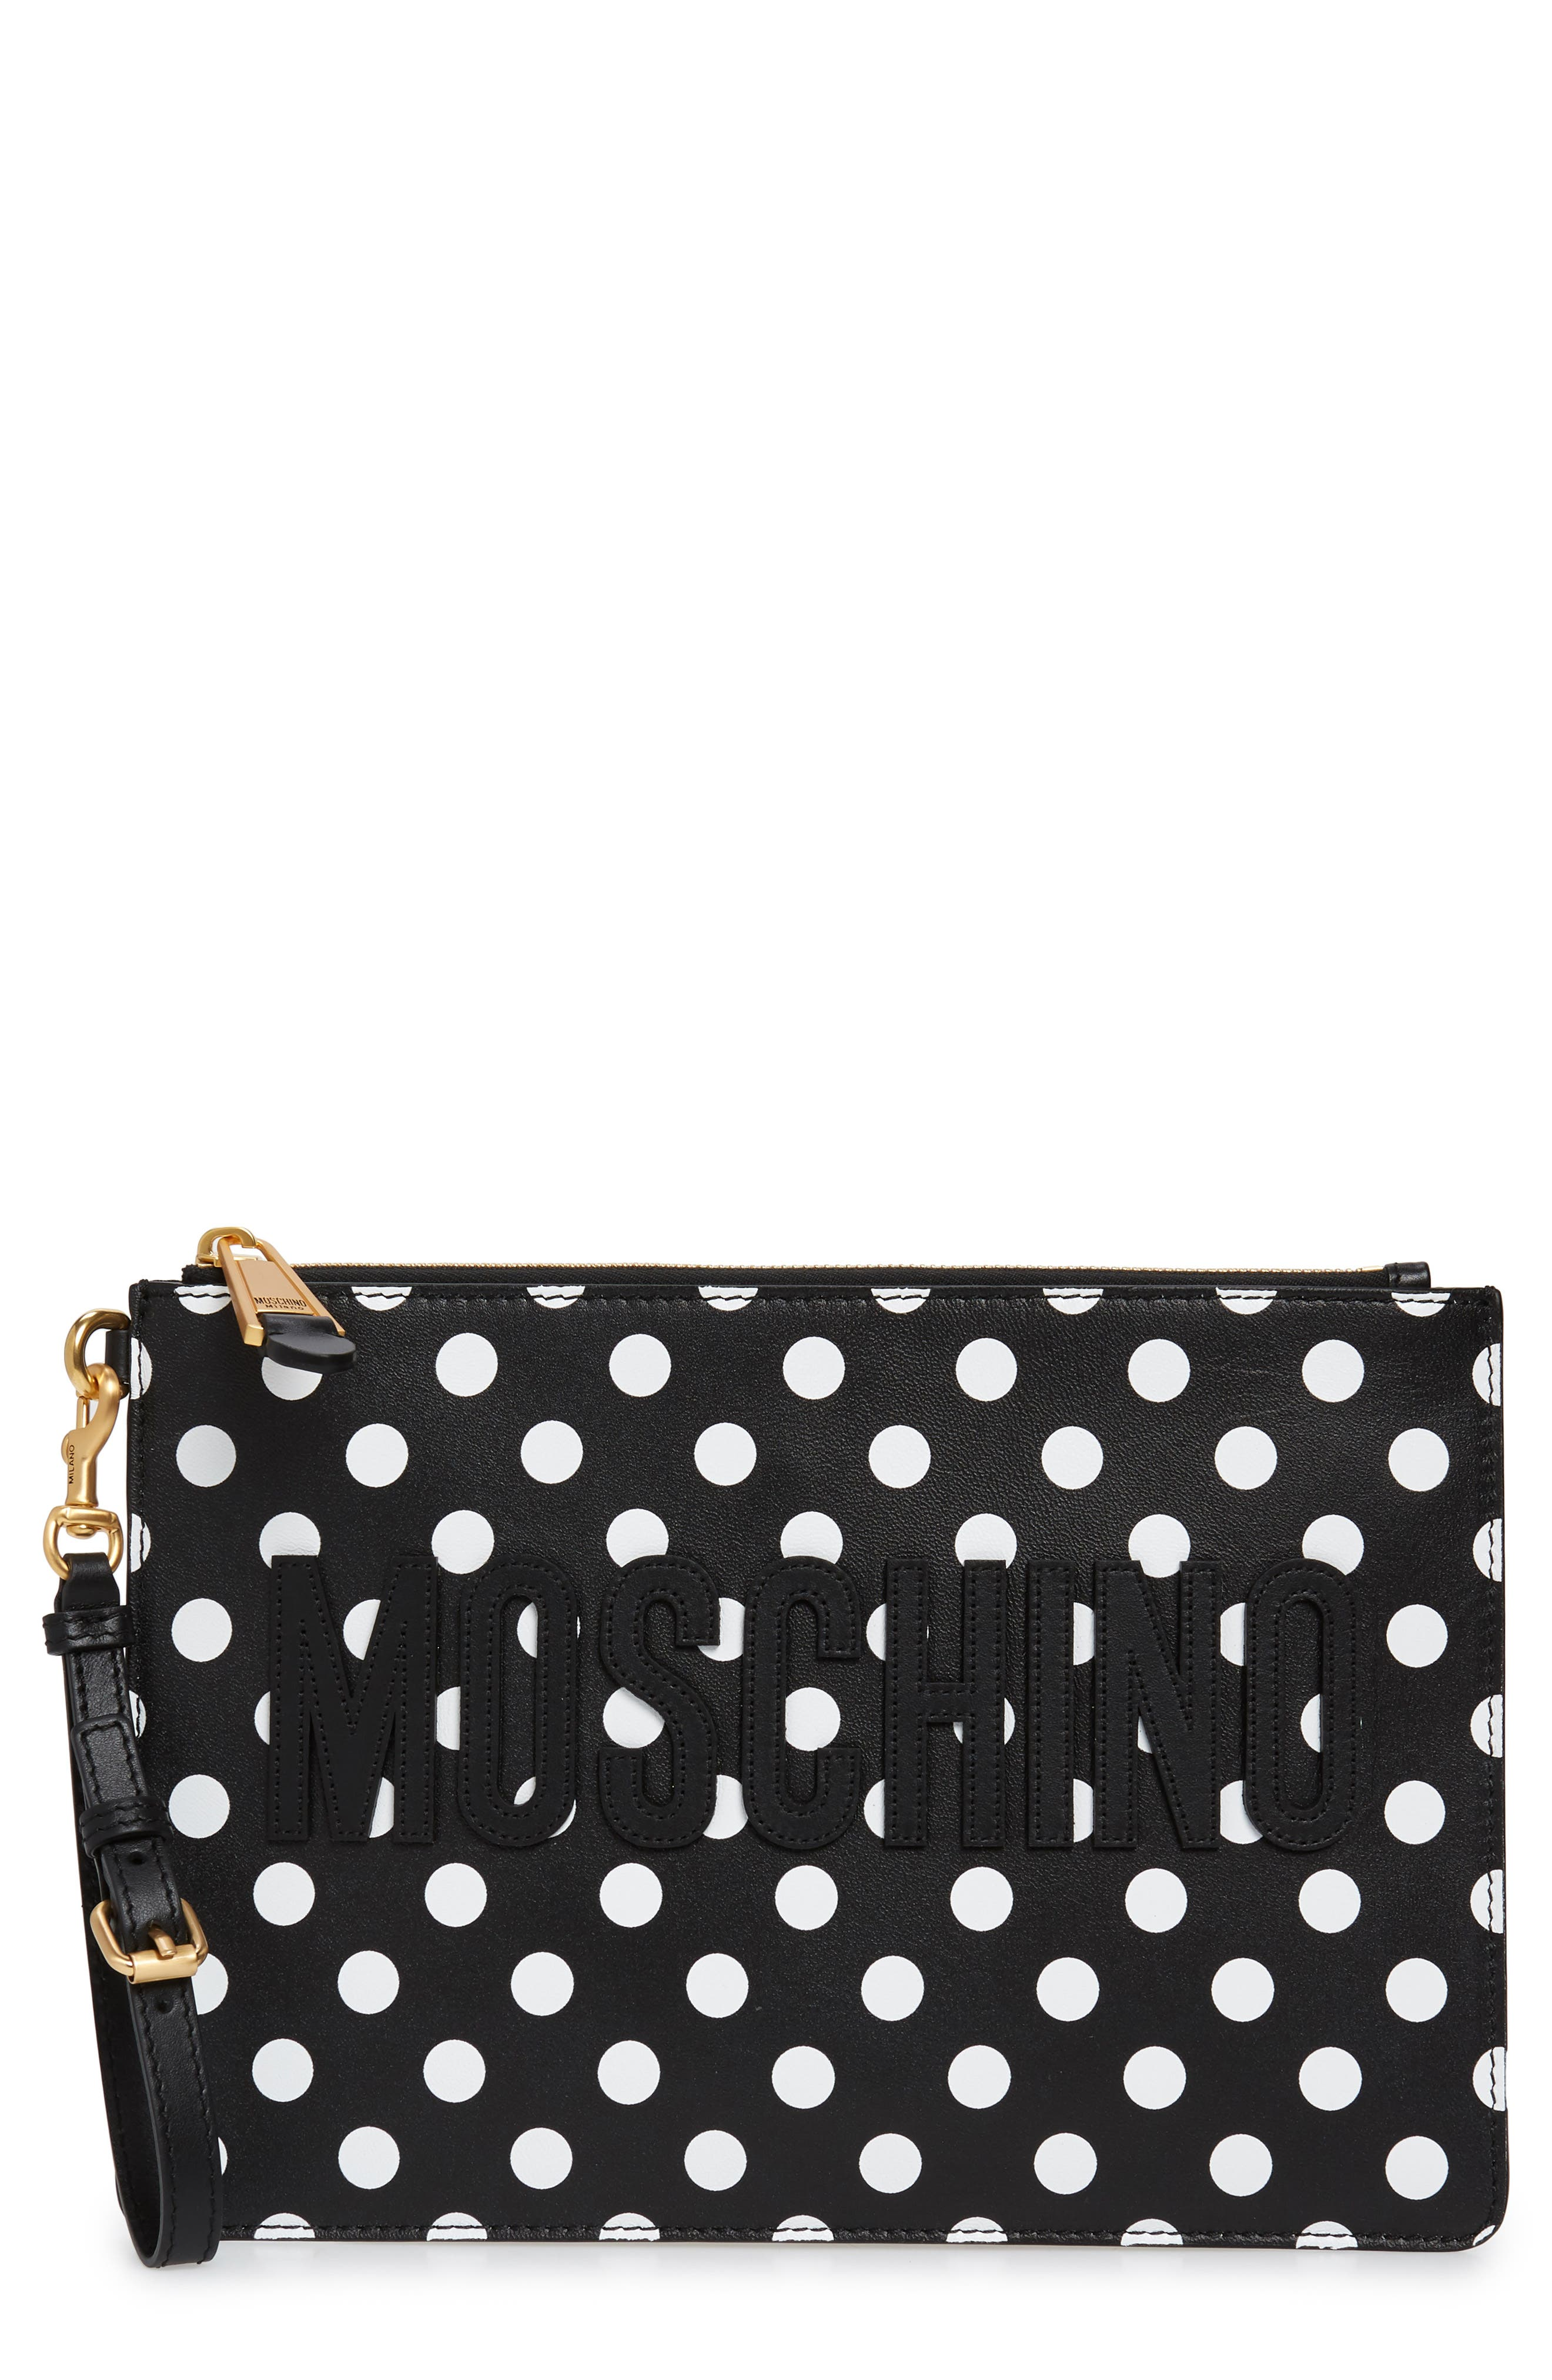 MOSCHINO, Logo Polka Dot Faux Leather Pouch, Main thumbnail 1, color, BLACK